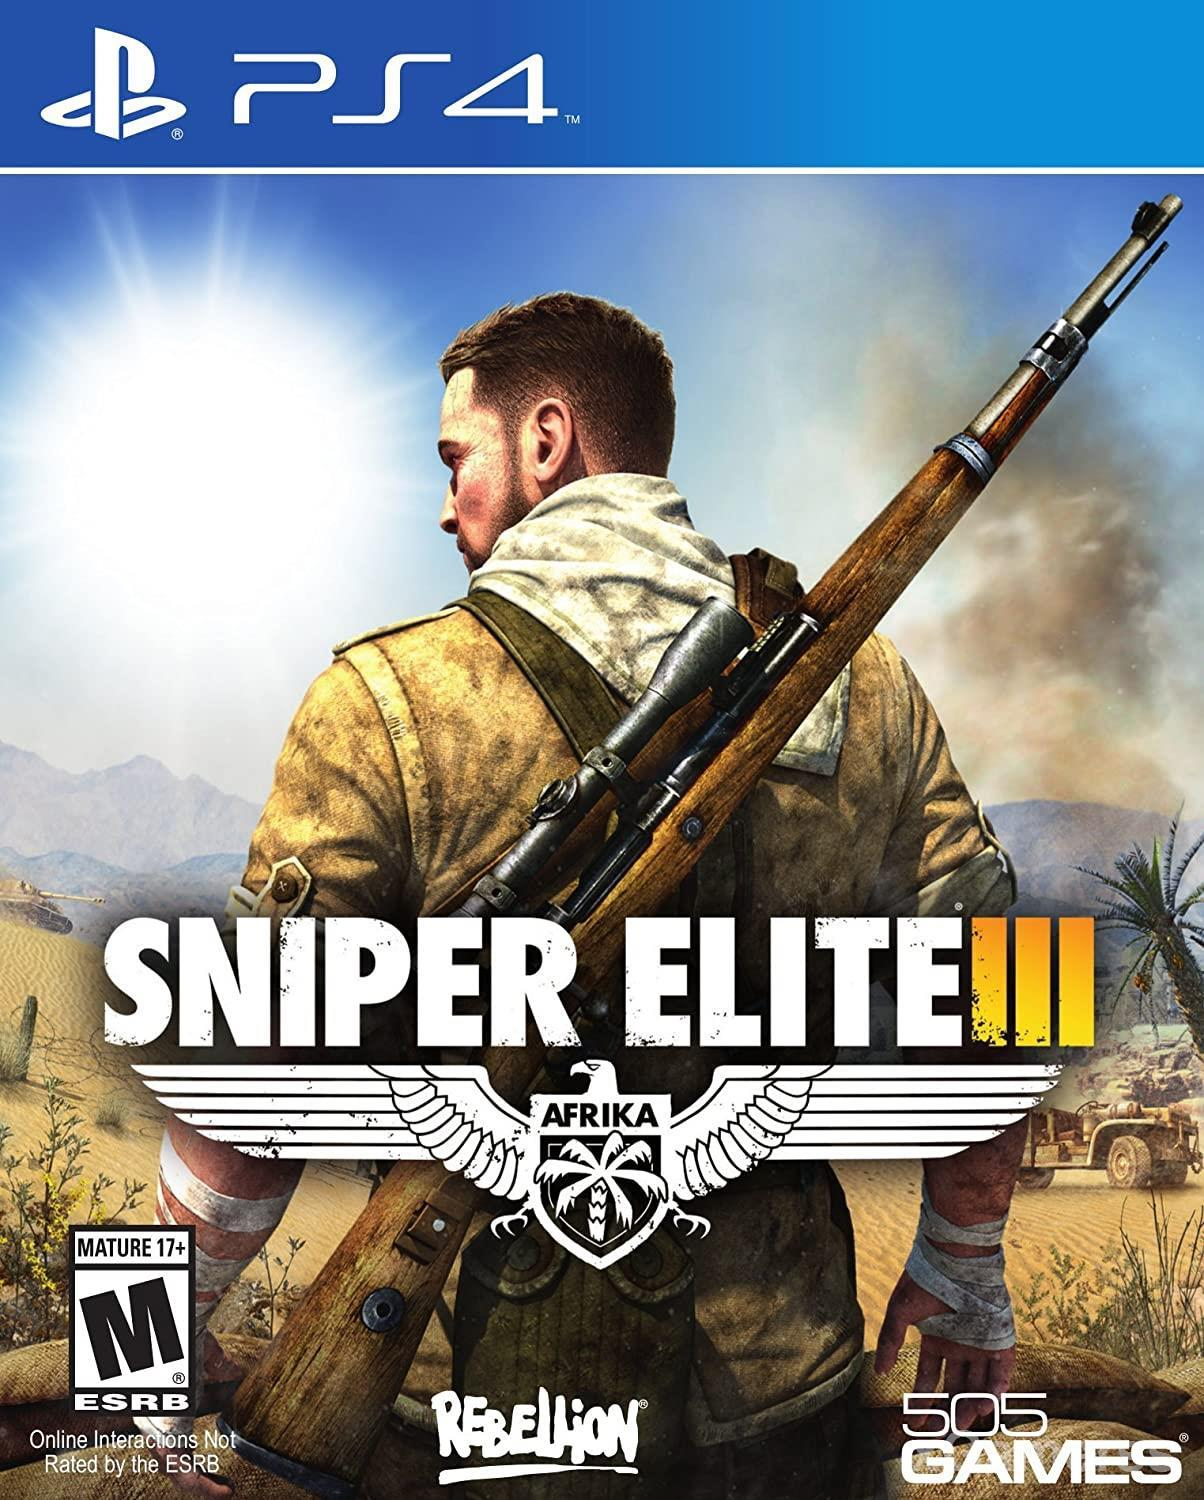 Sniper Elite III - Action in World War II with a view from the telescopic sight